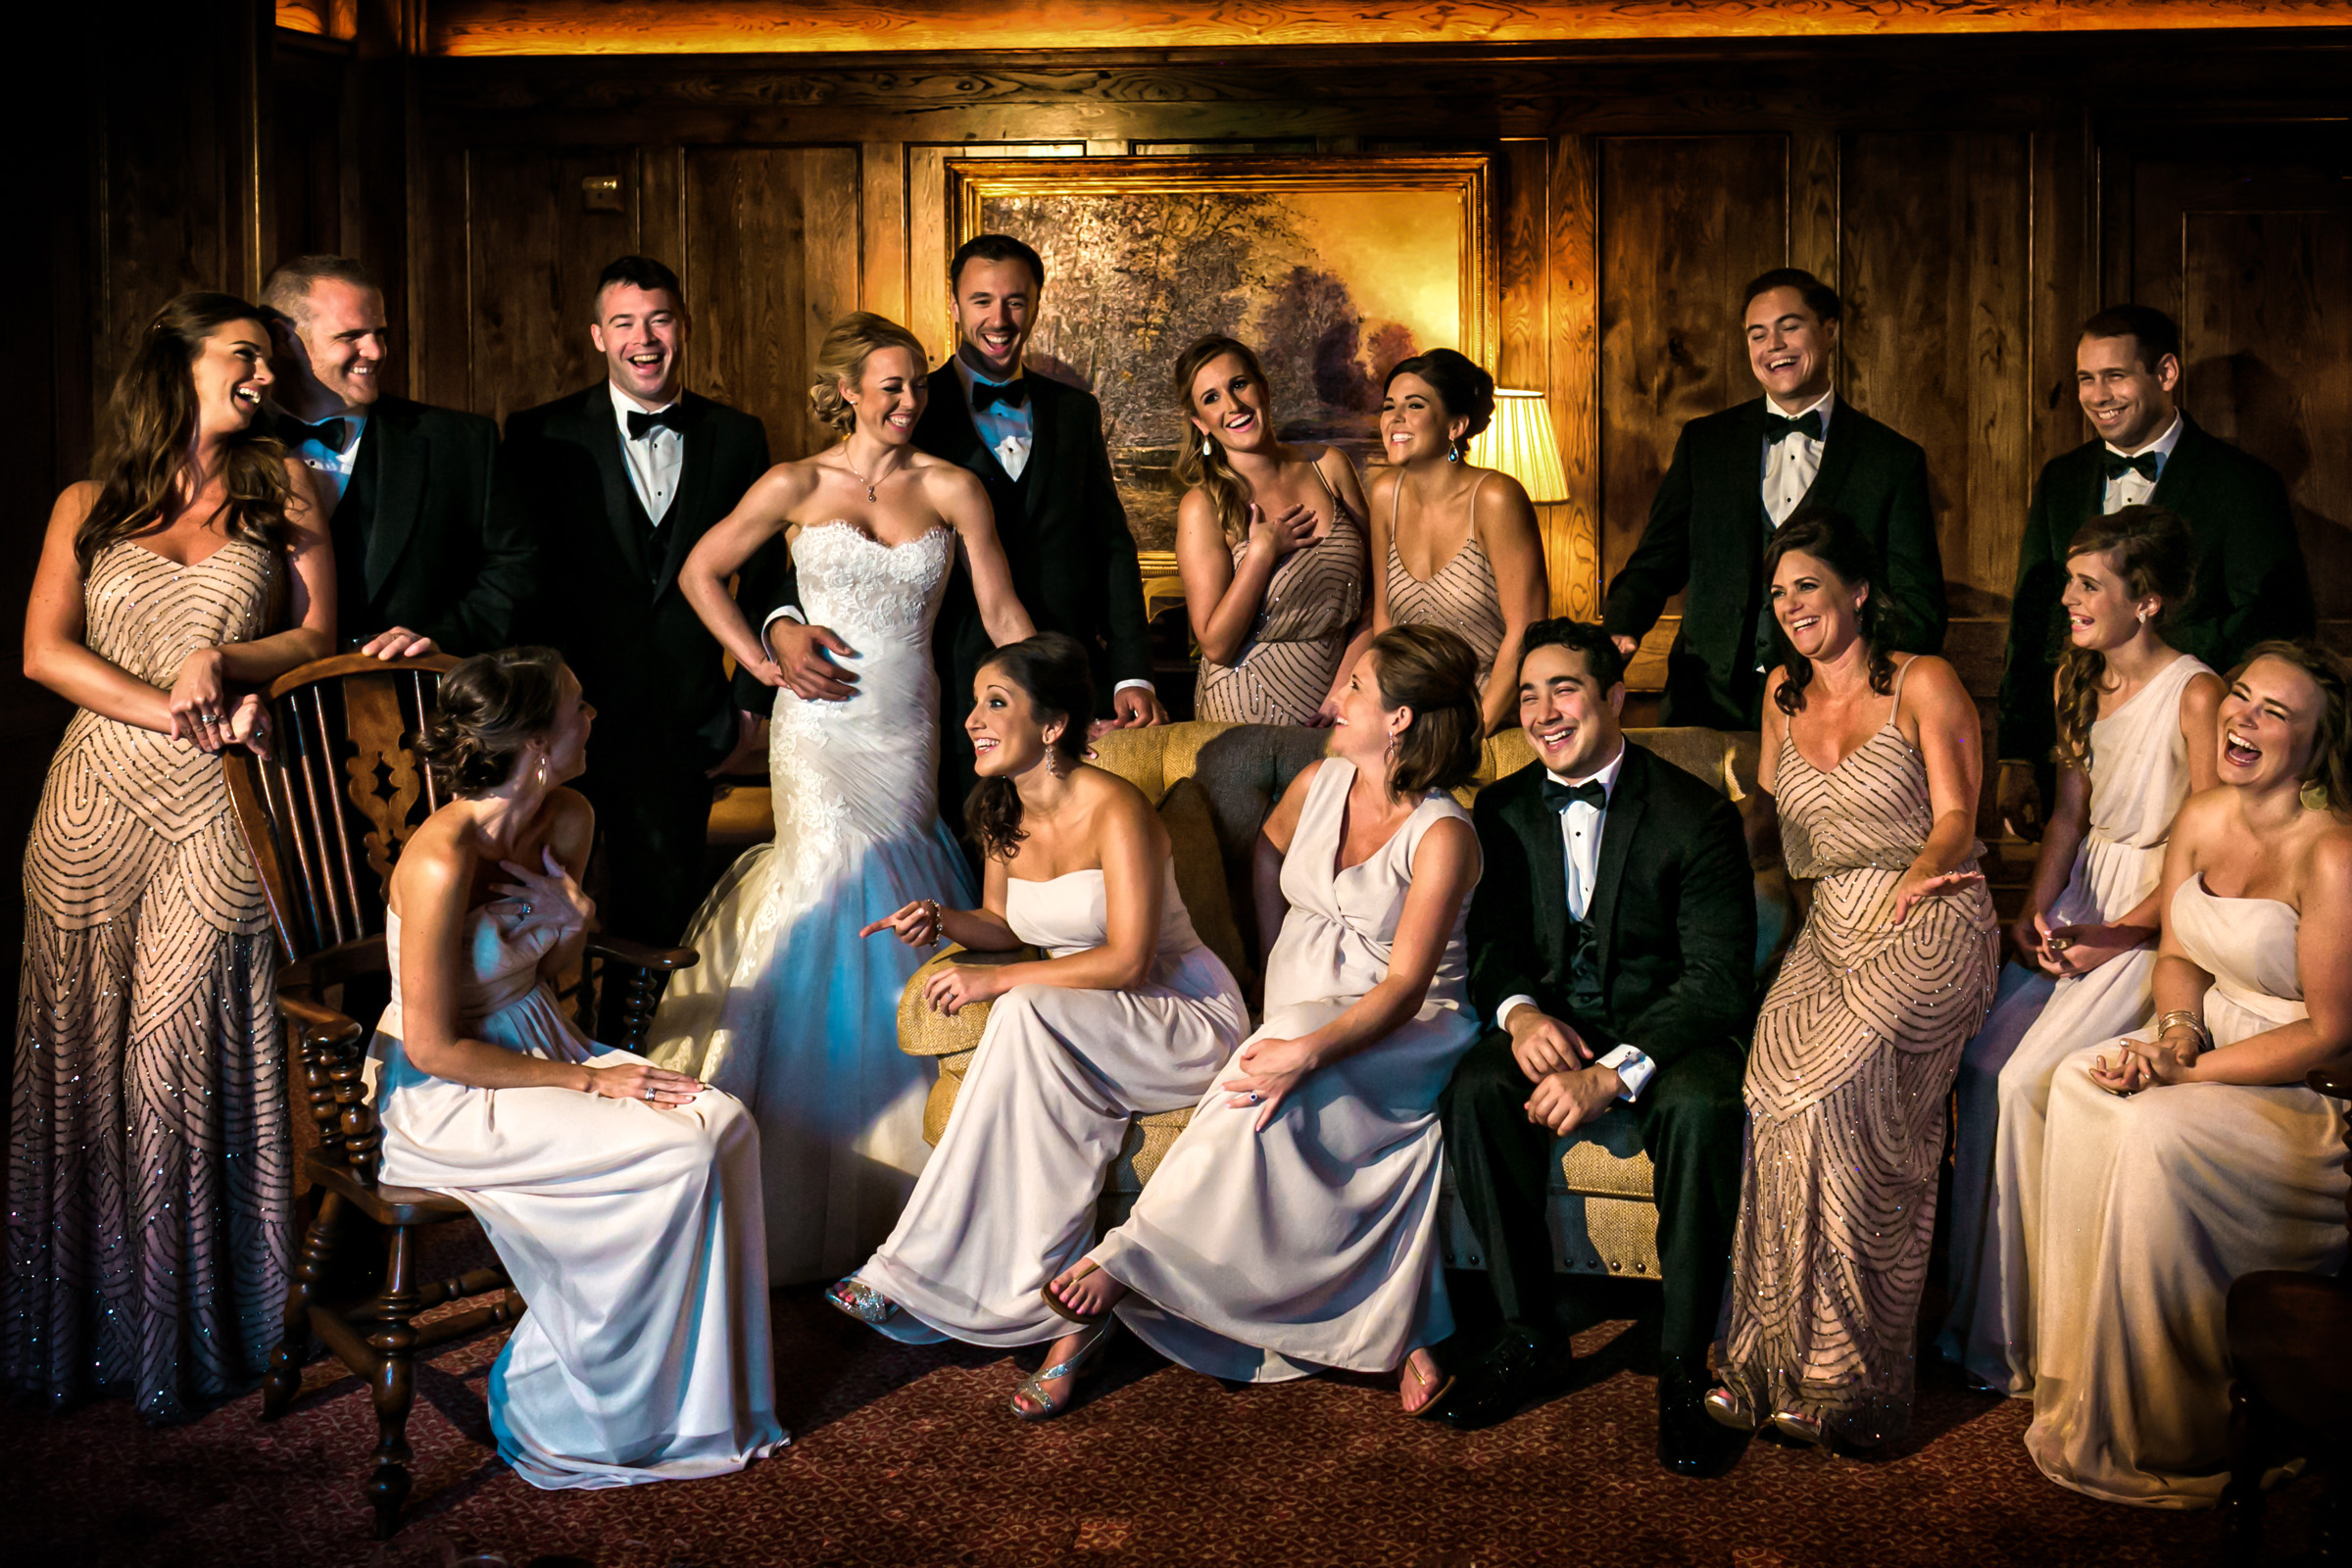 Animated group shot with bride and groom - photo by Christophe Viseux Photography